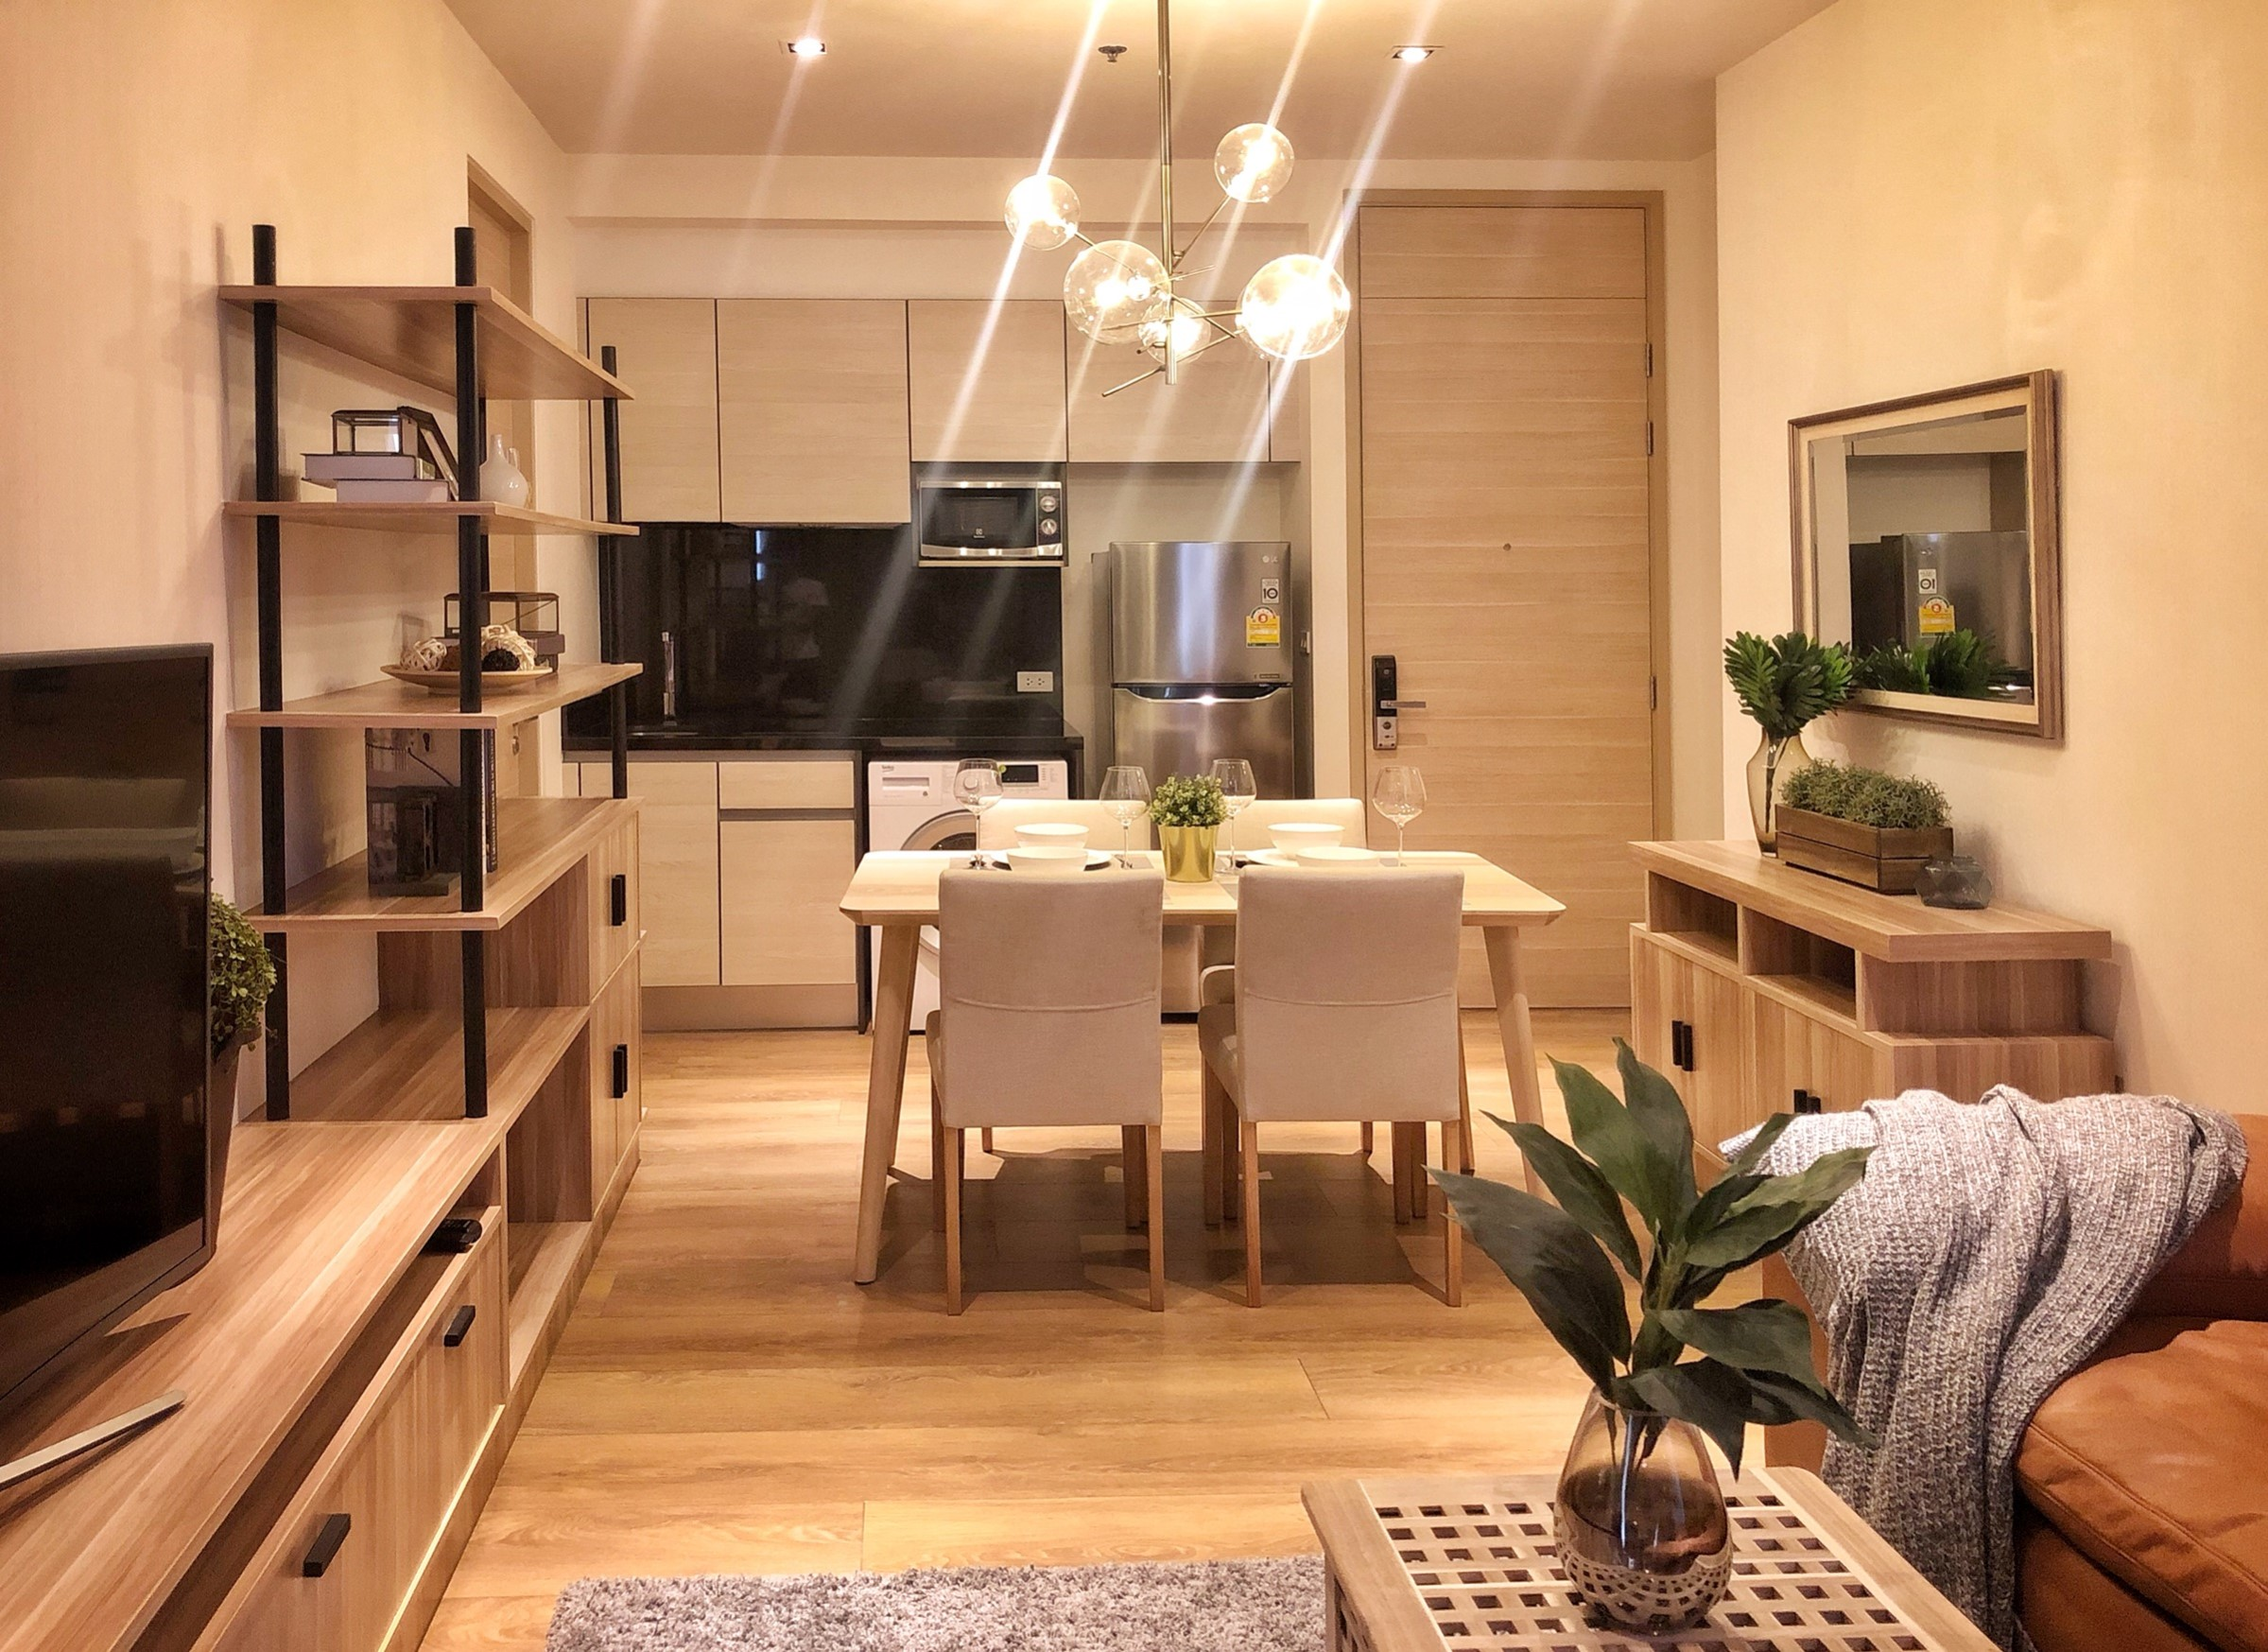 For SaleCondoSukhumvit, Asoke, Thonglor : Park 24 Selling with tenant (2-year contract) Fully furnished 2 bedroom unit with nice view, electrical appliances included.